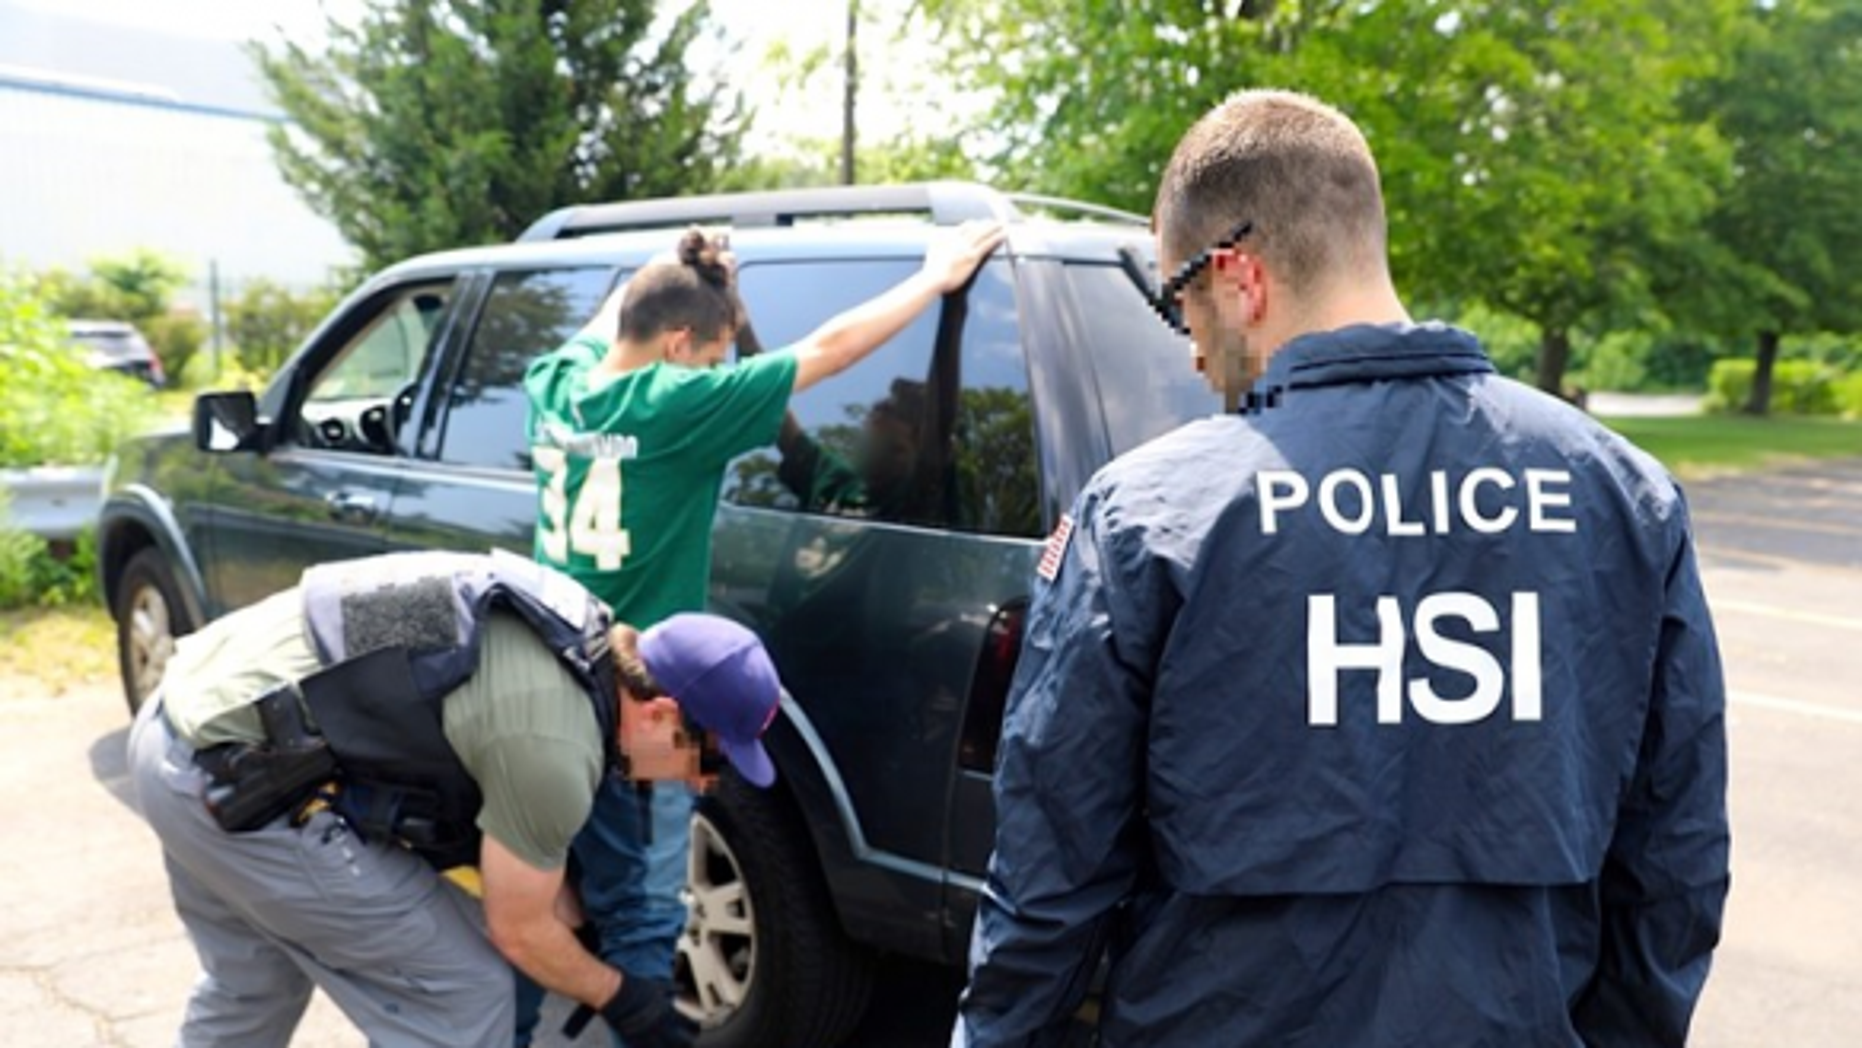 Numerous suspected MS-13 gang members have been arrested on Long Island in the past month, officials said.